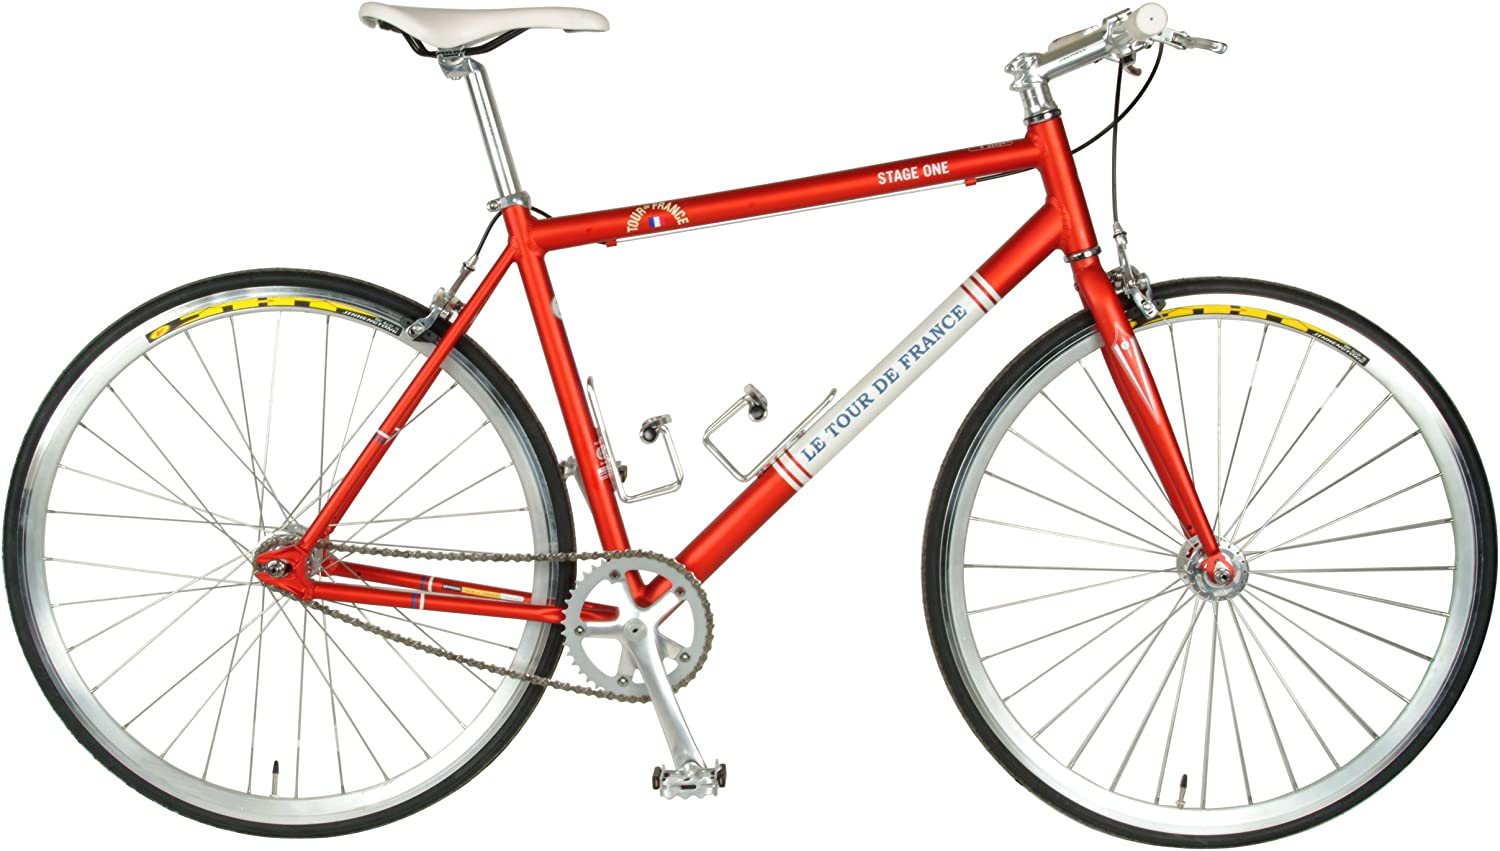 Tour de France Stage One Vintage Fixie Bike, 700c Wheels, Men s Bike, Red, 45 cm Frame, 51 cm Frame, 56 cm Frame